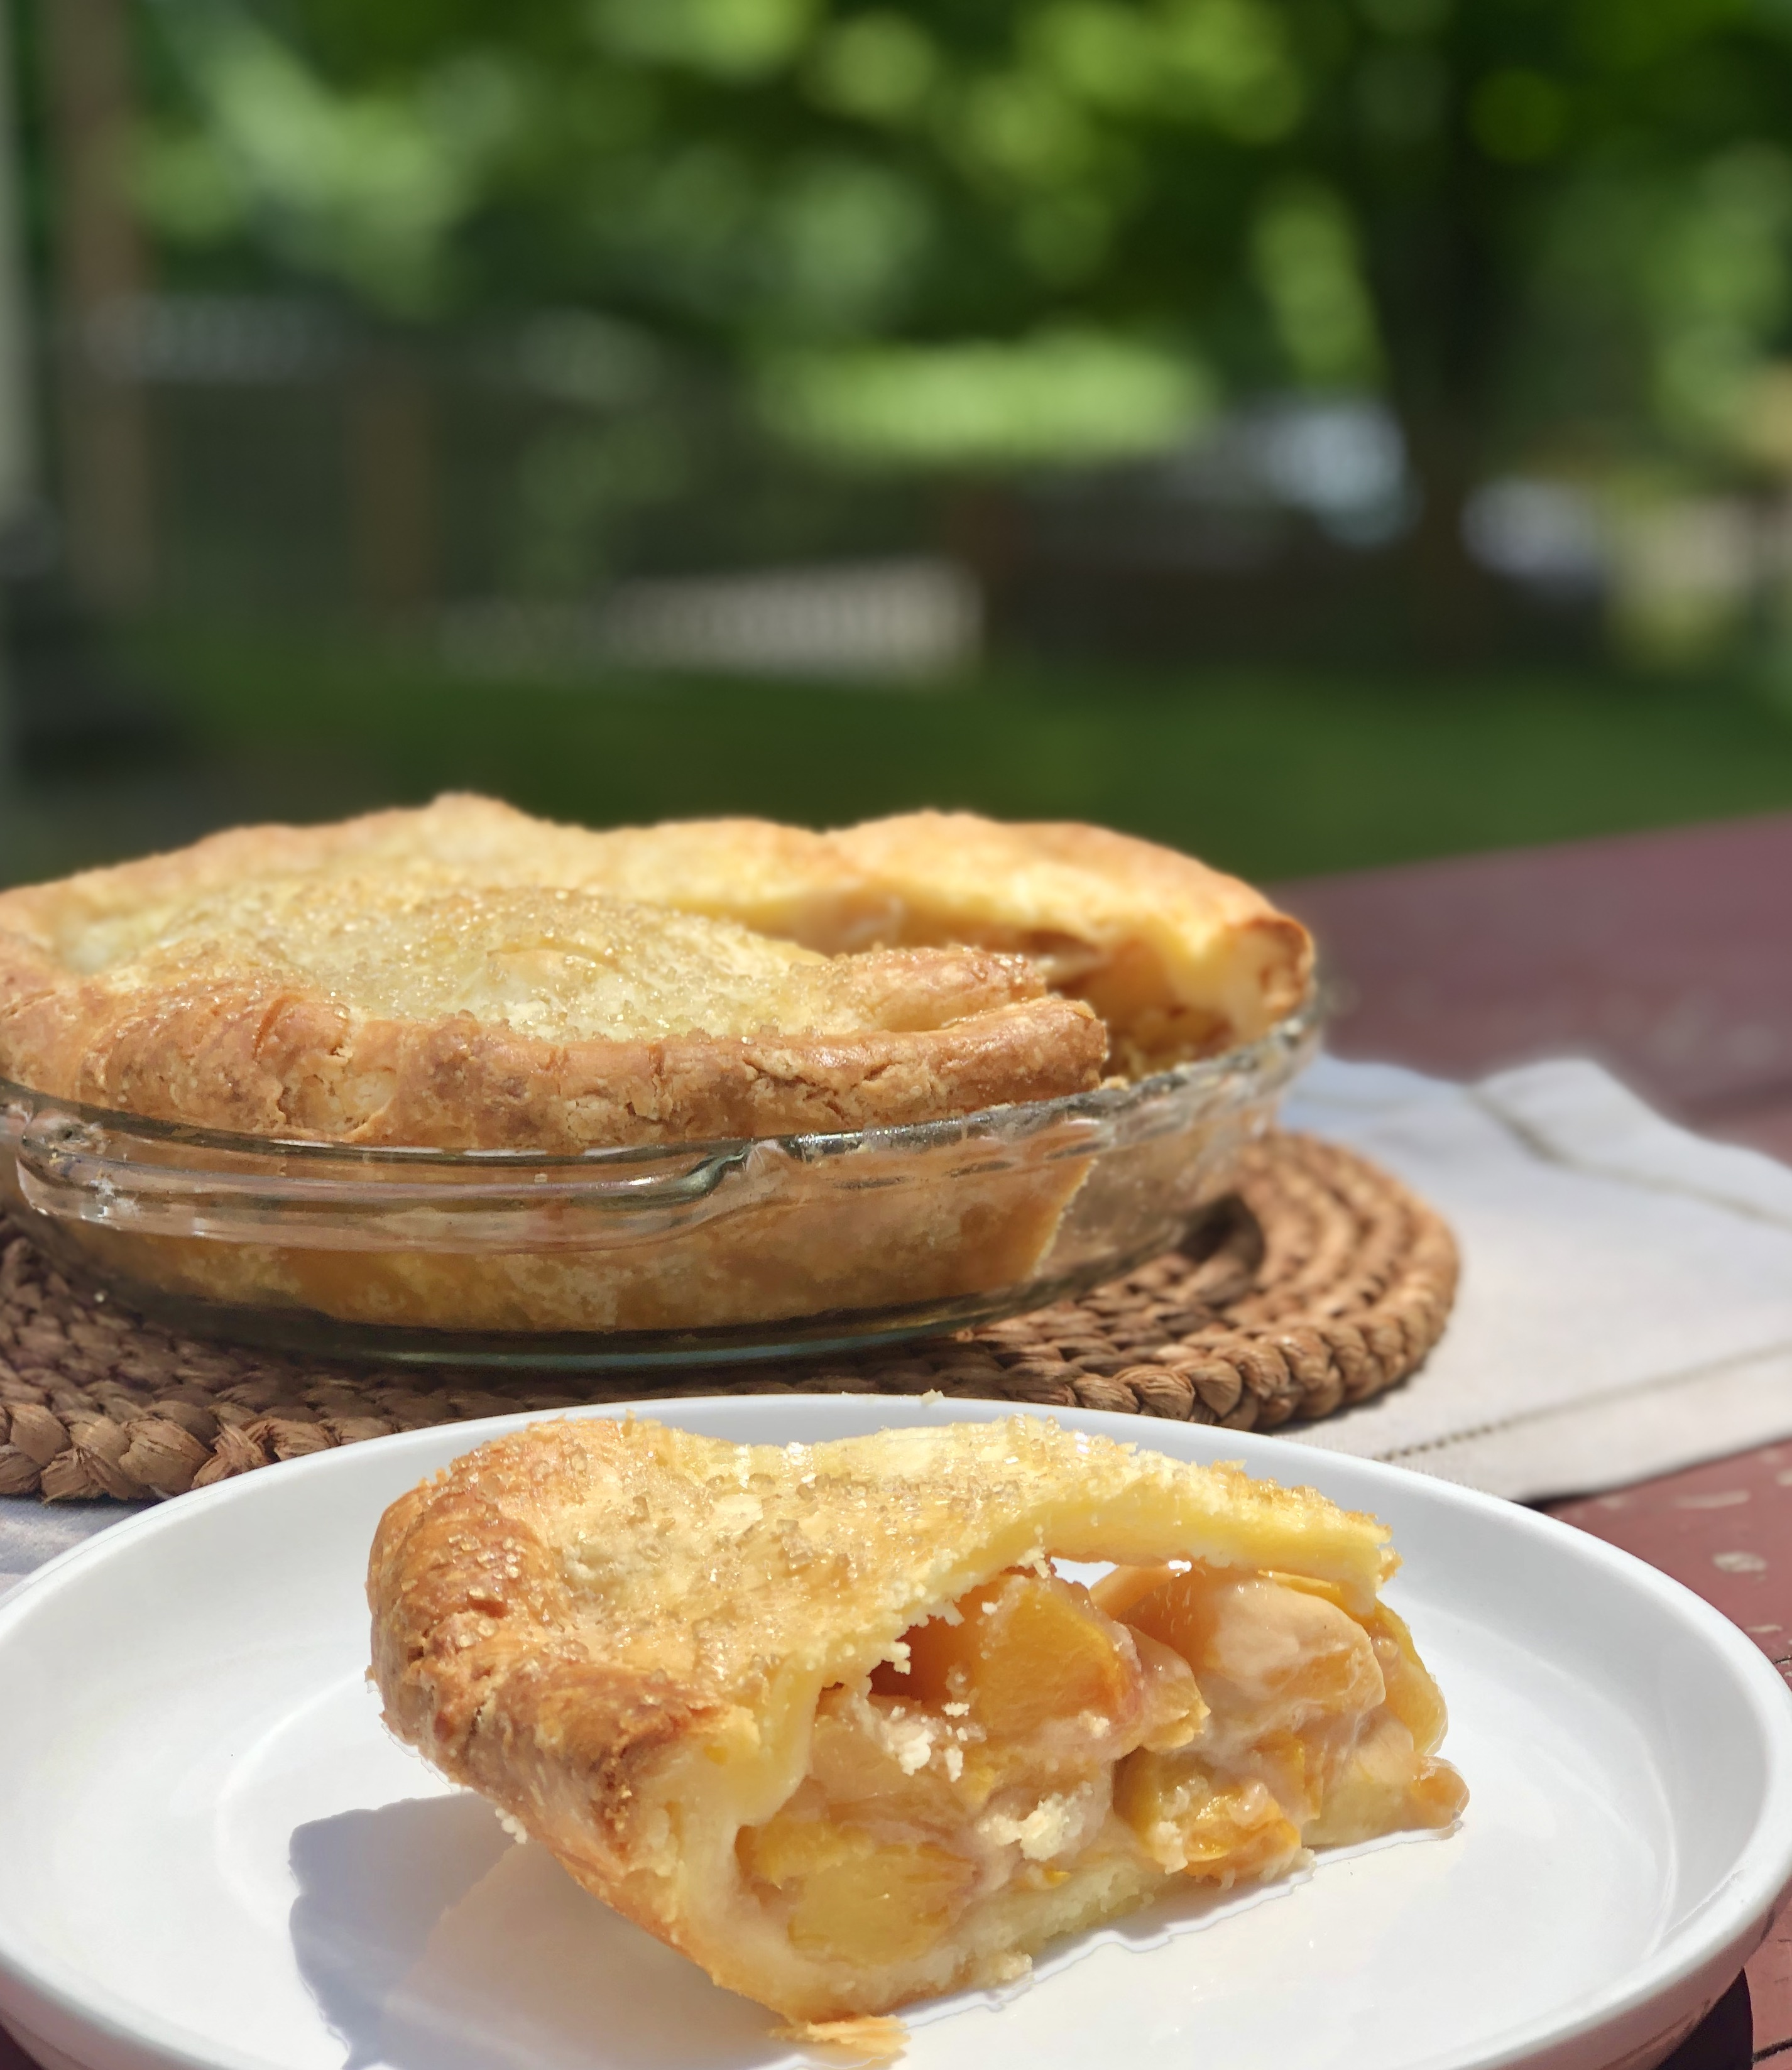 Gluten-free Ginger Peach Pie